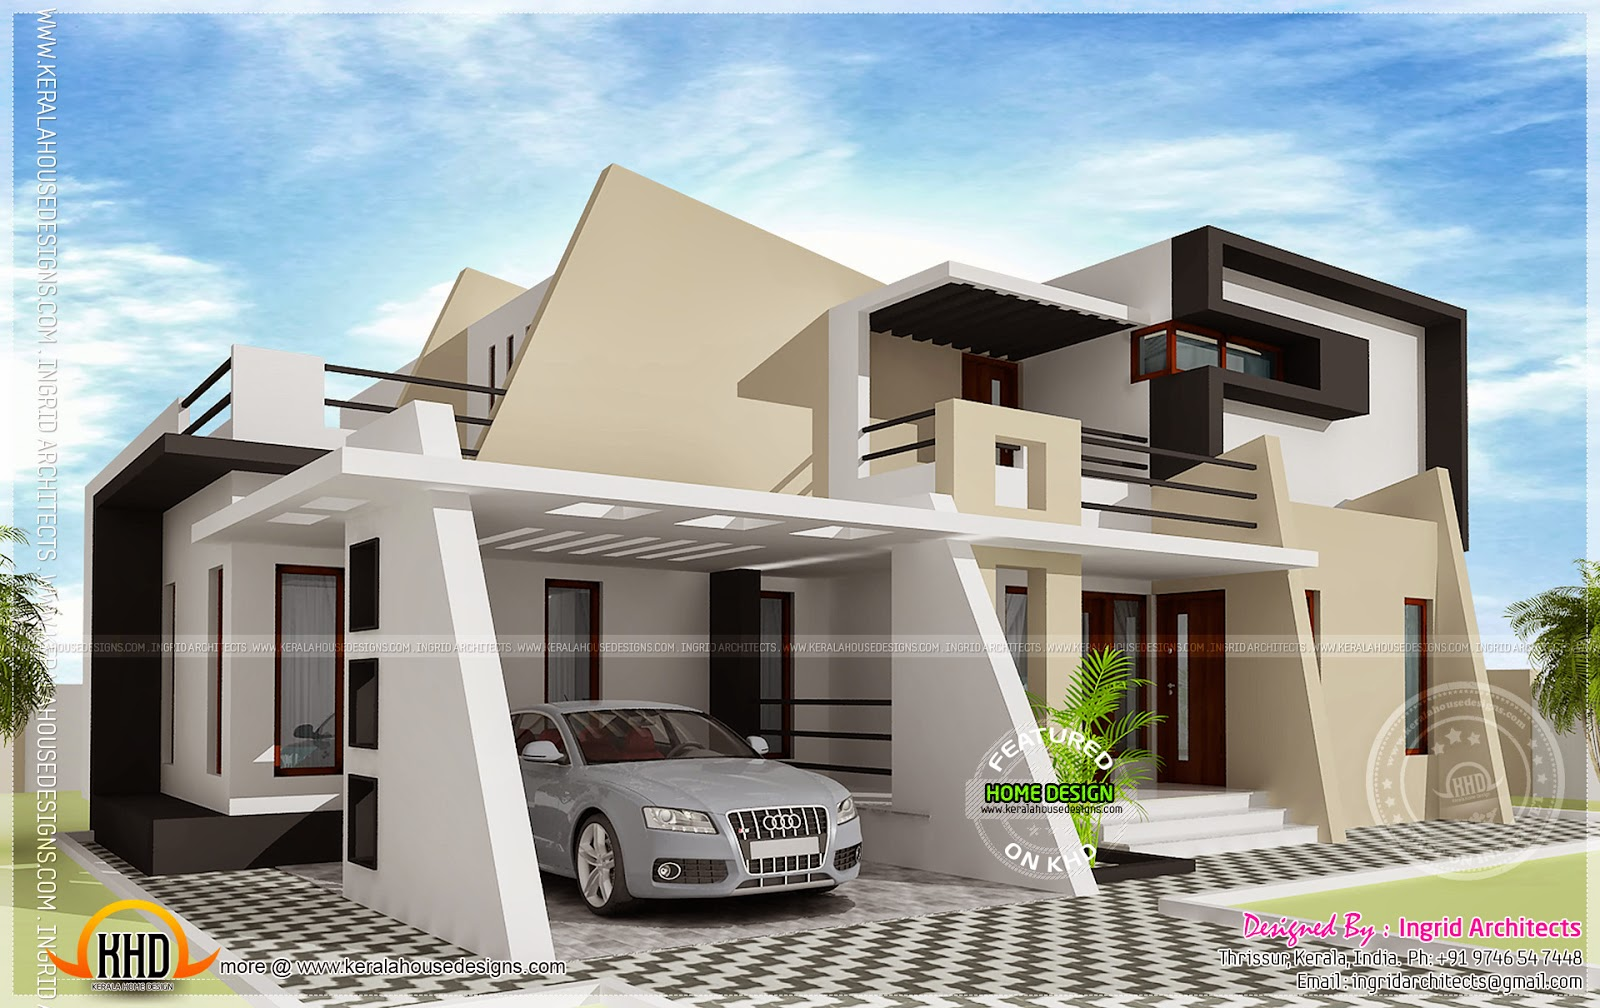 316 square meter contemporary home kerala home design and floor plans - Houses undersquare meters ...